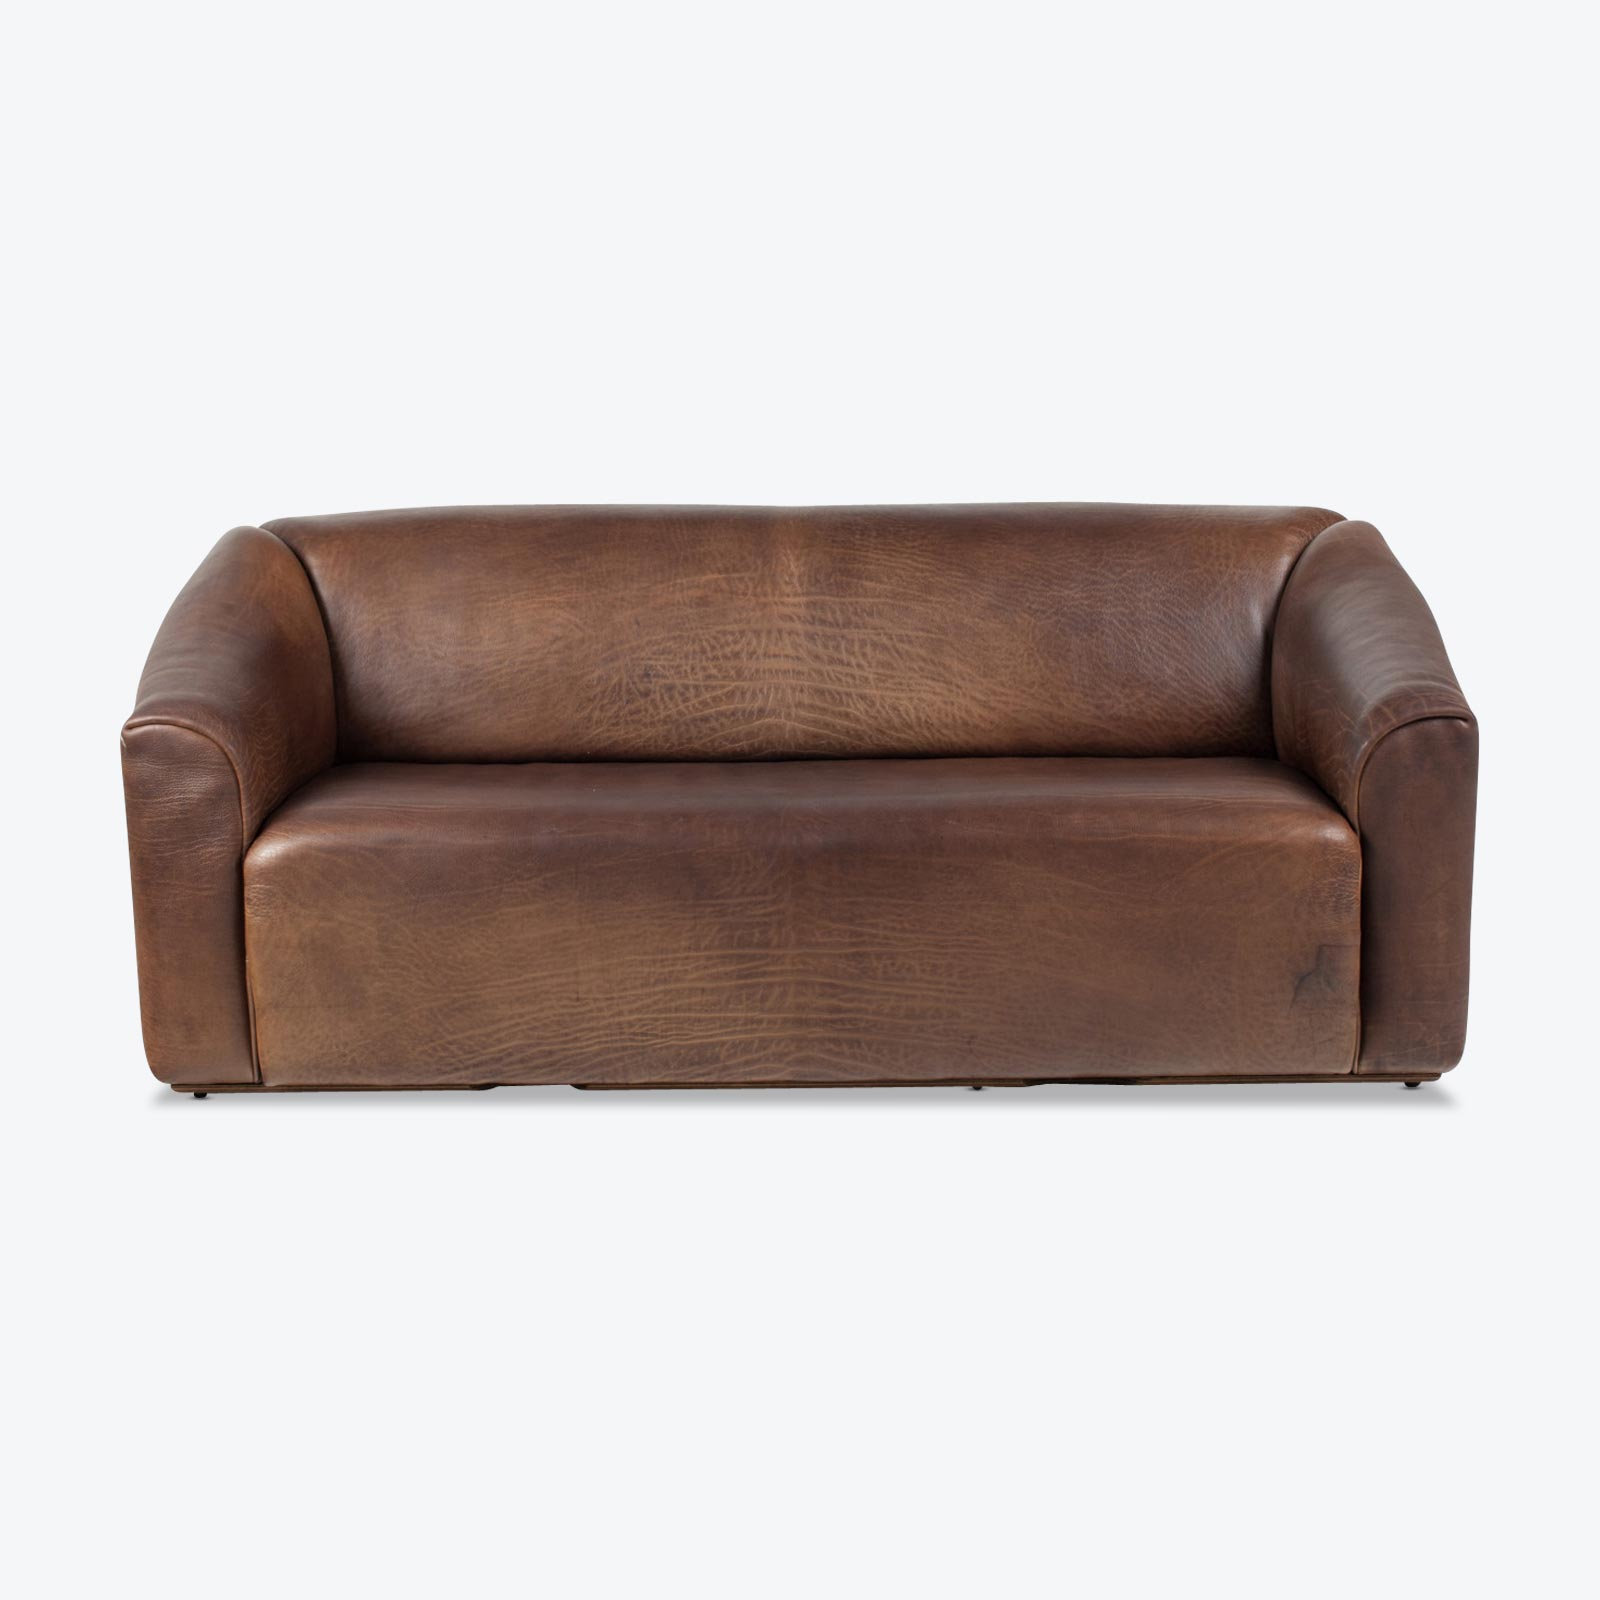 De Sede Model Ds47 3 Seat Sofa By De Sede In Thick Brown Leather 1970s Switzerland